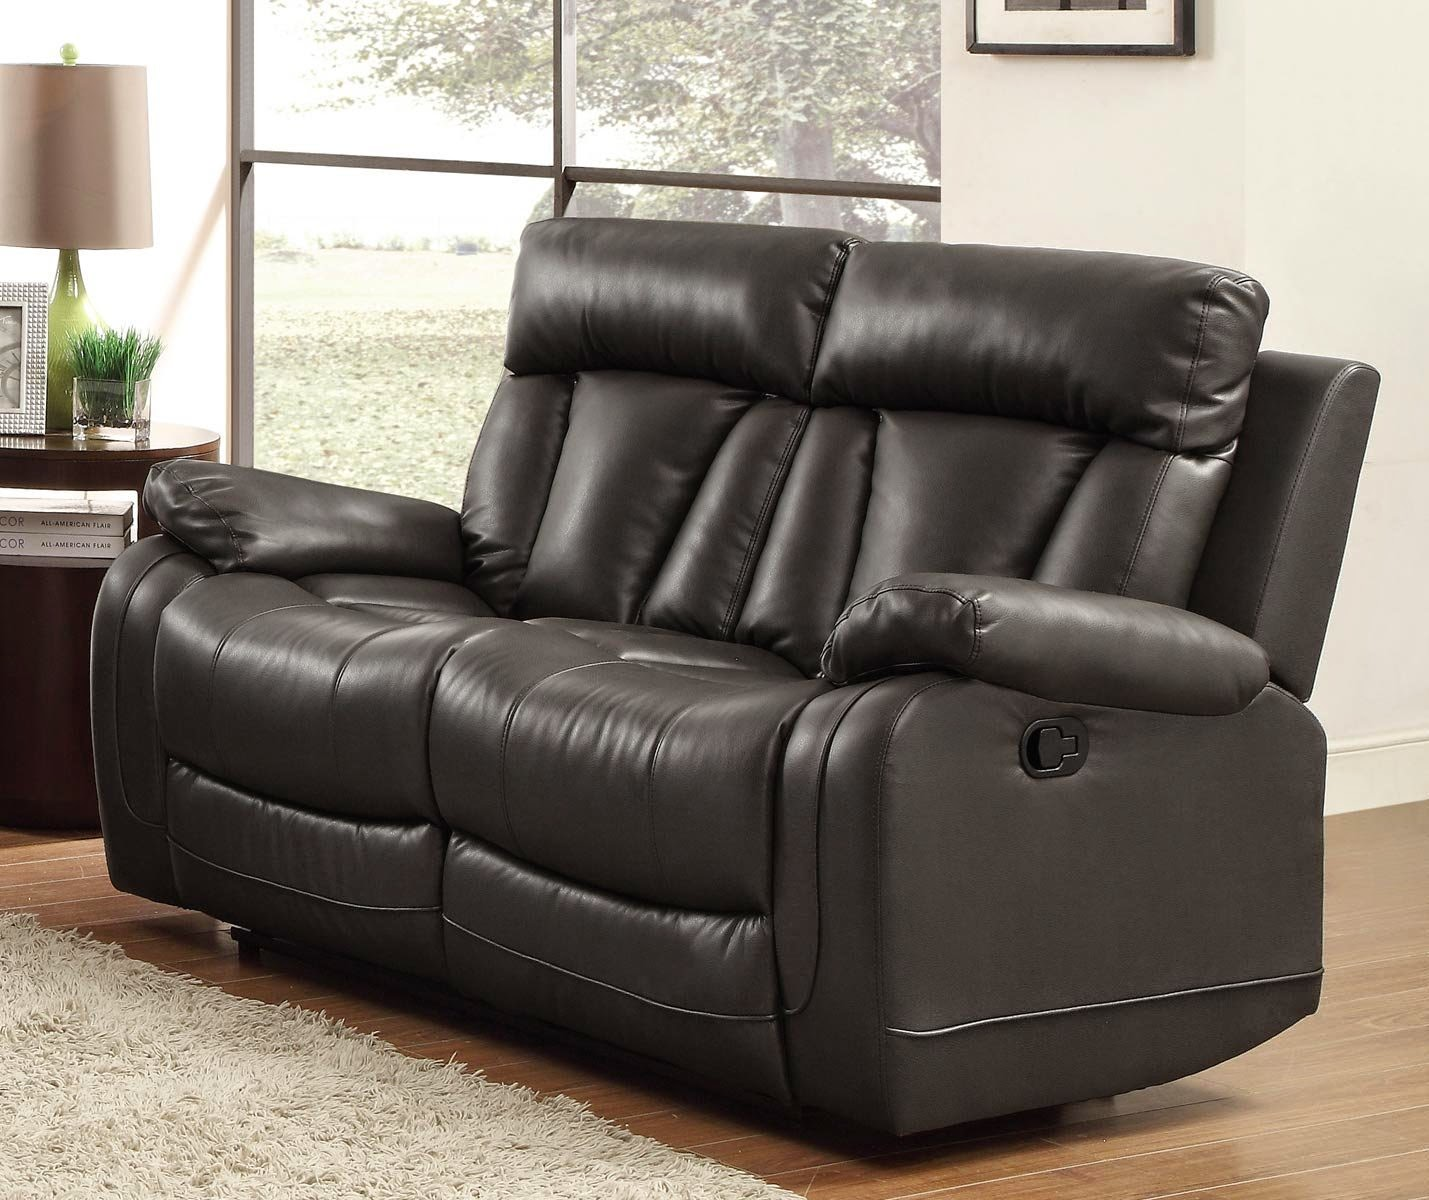 cheap recliner sofas for sale black leather reclining sofa and loveseat. Black Bedroom Furniture Sets. Home Design Ideas